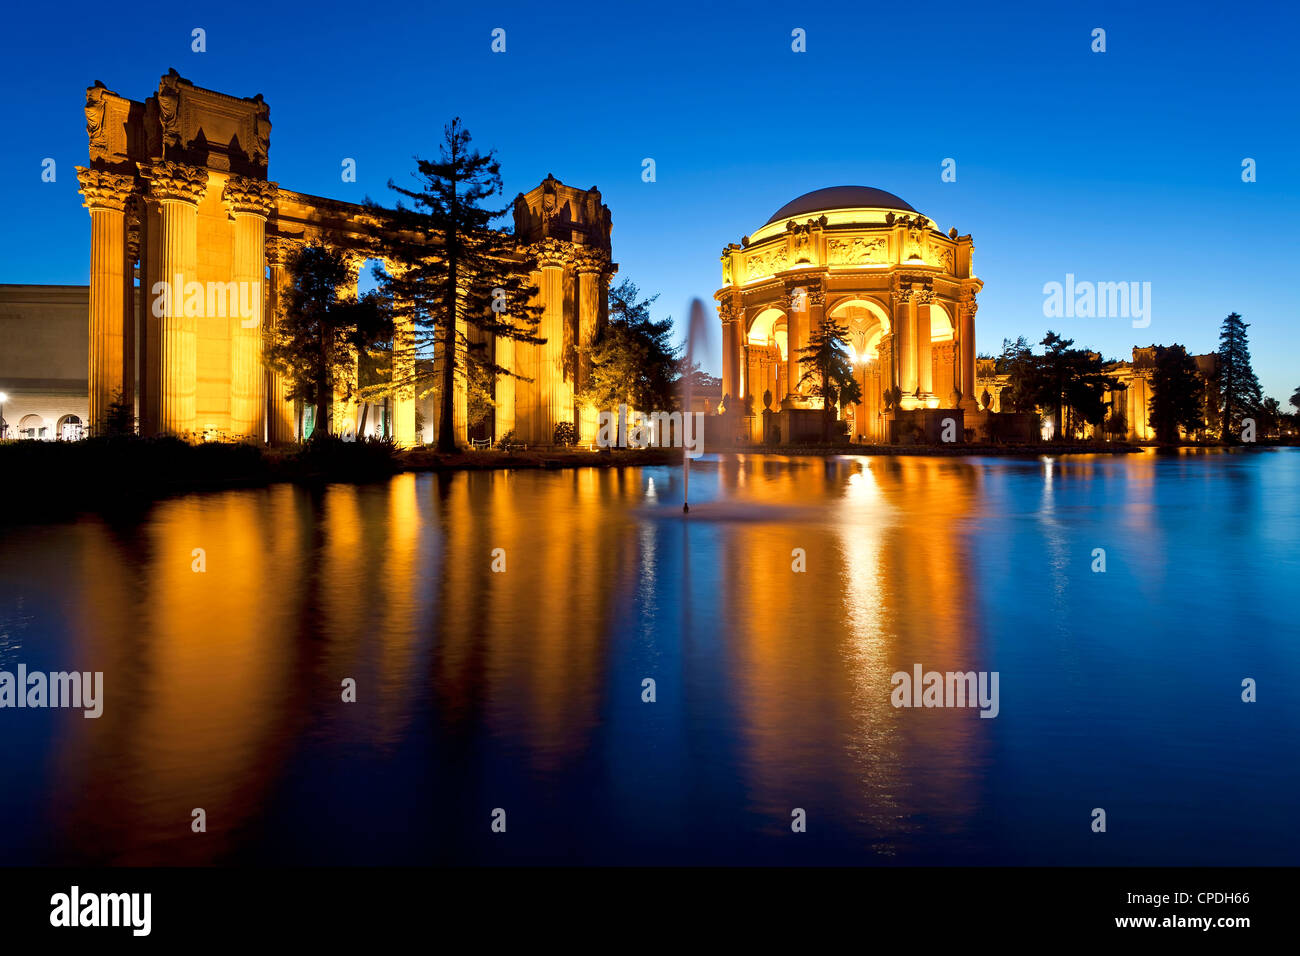 Palace of Fine Arts illuminated at night, San Francisco, California, United States of America, North America - Stock Image